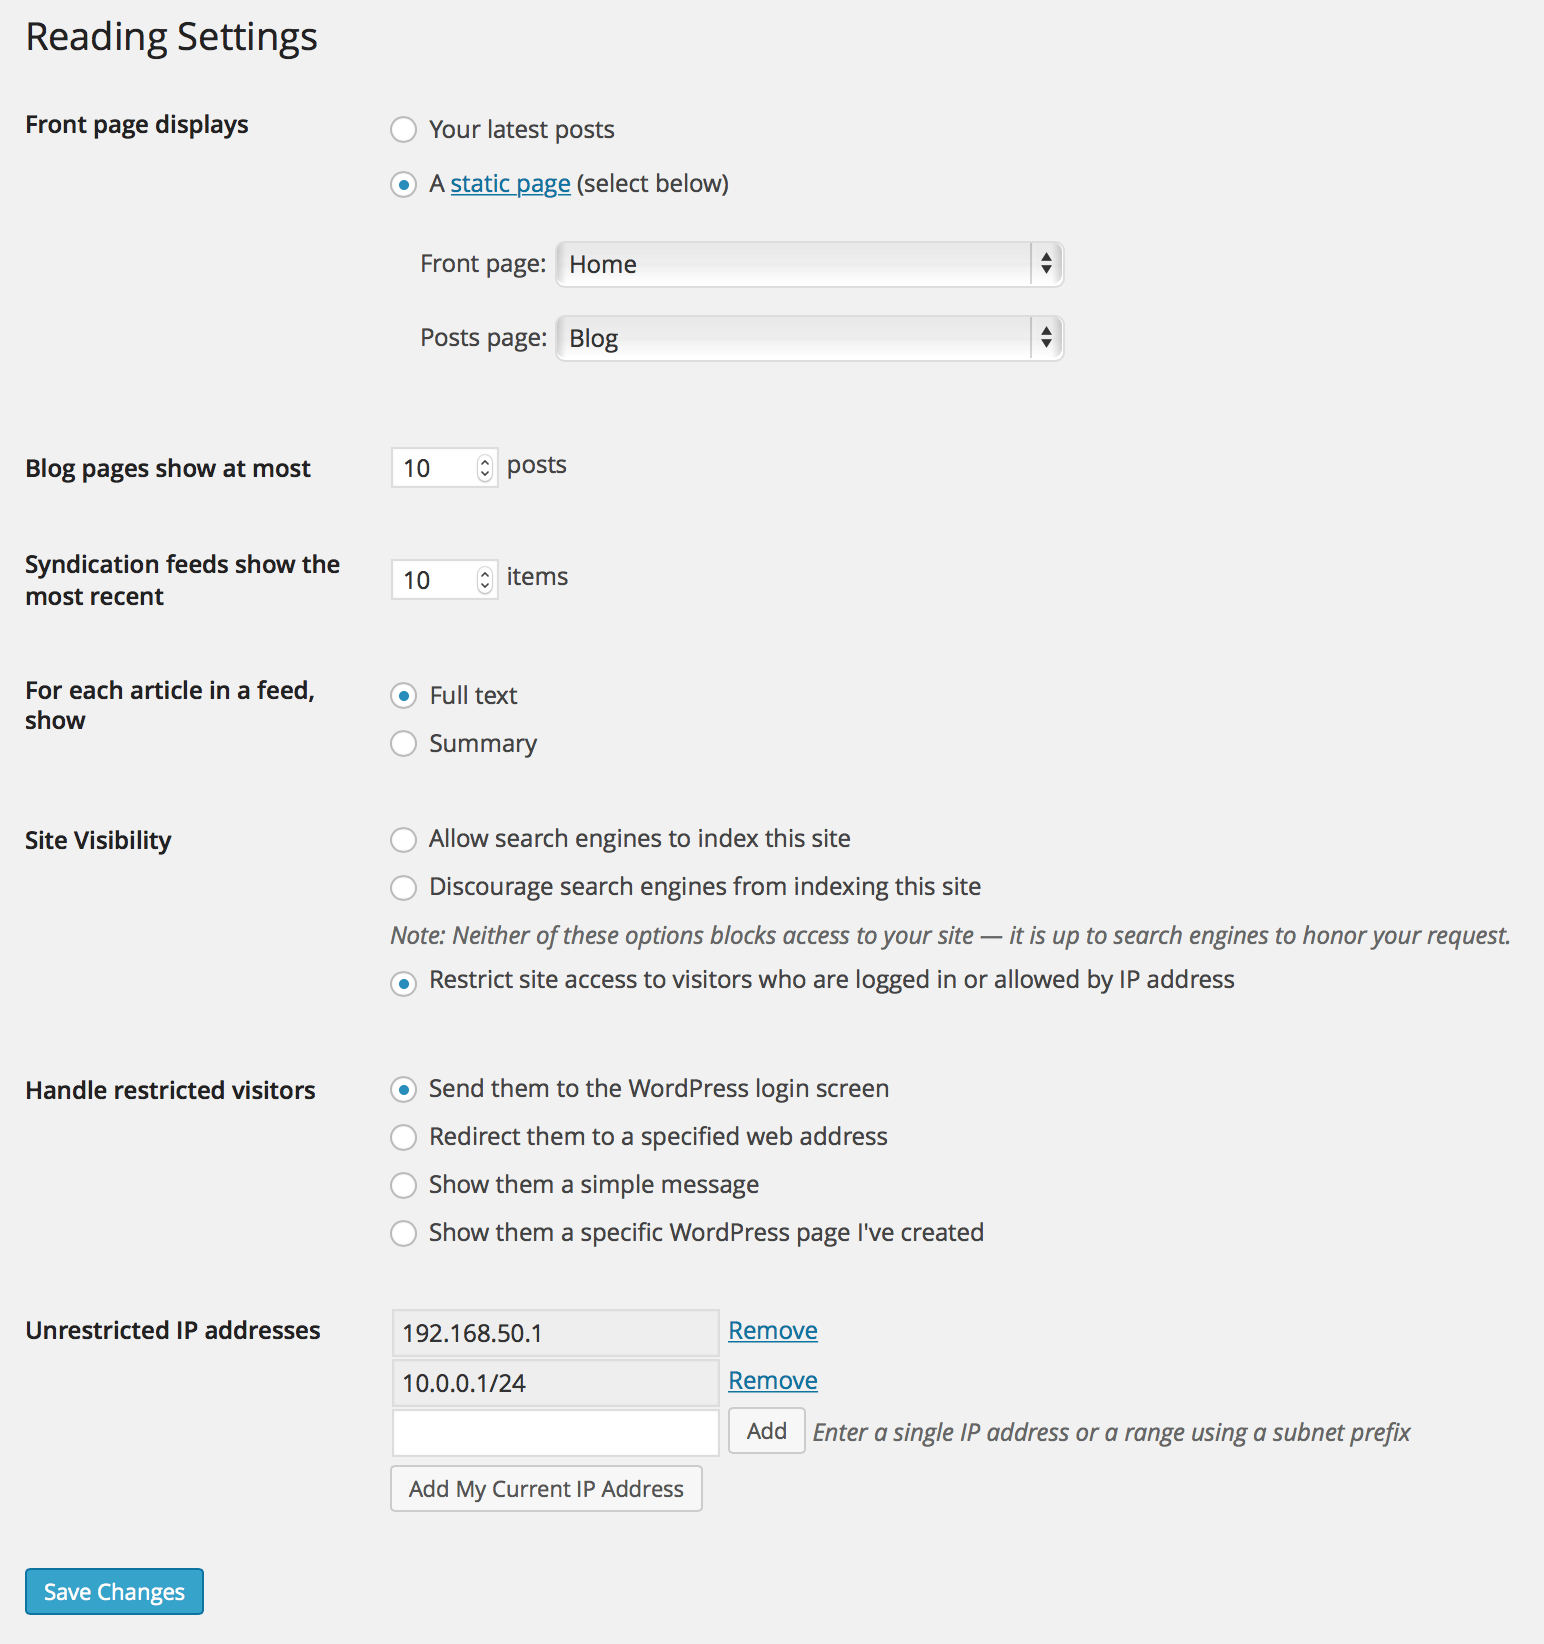 Restricted Site Access settings shown within the Reading Settings in WP Admin